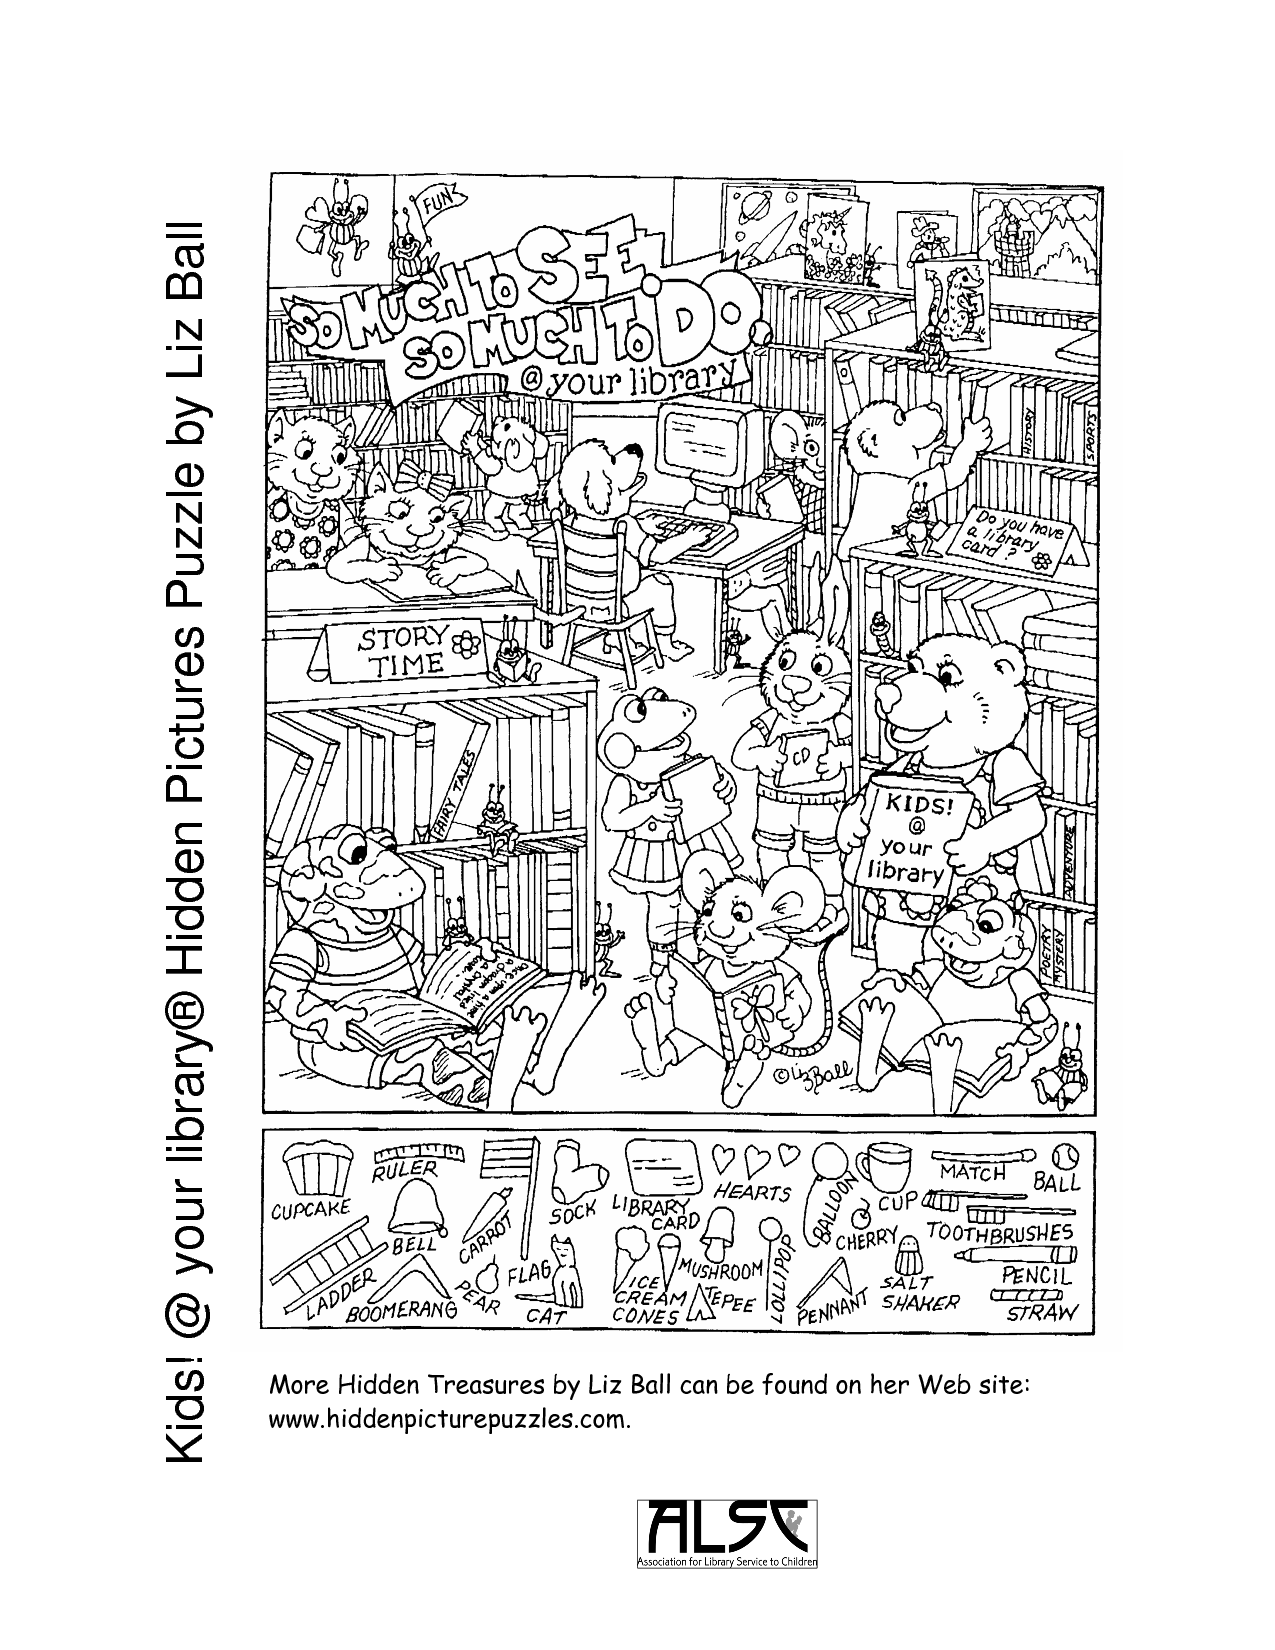 printable puzzles for adults kids your library hidden pictures puzzle by liz - Printable Hidden Pictures For Kids